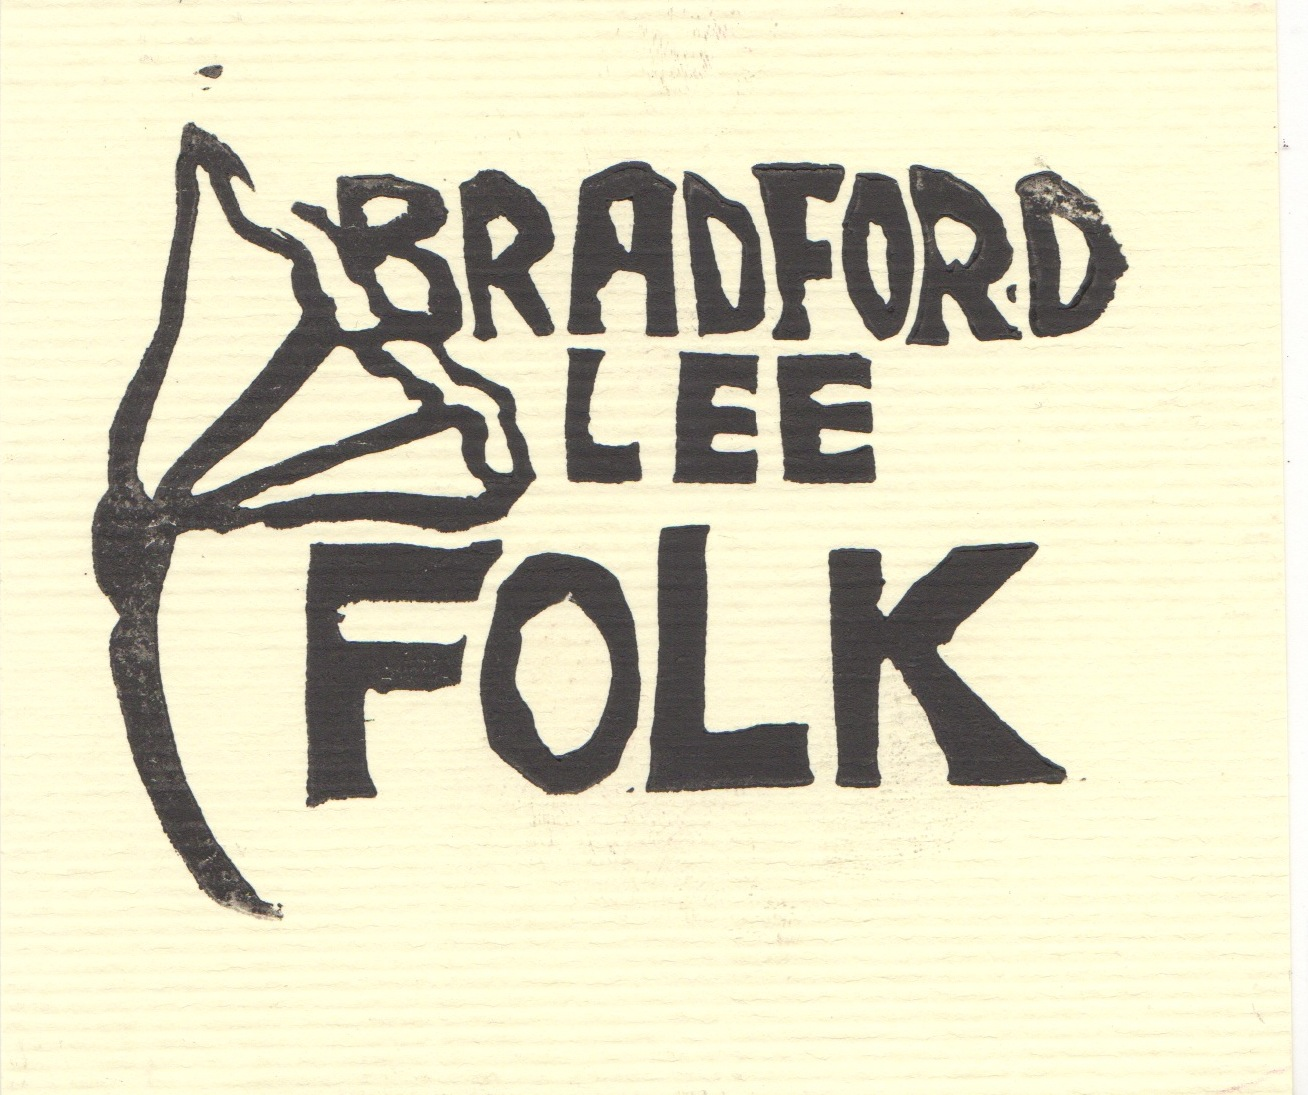 Bradford Lee Folk .jpeg